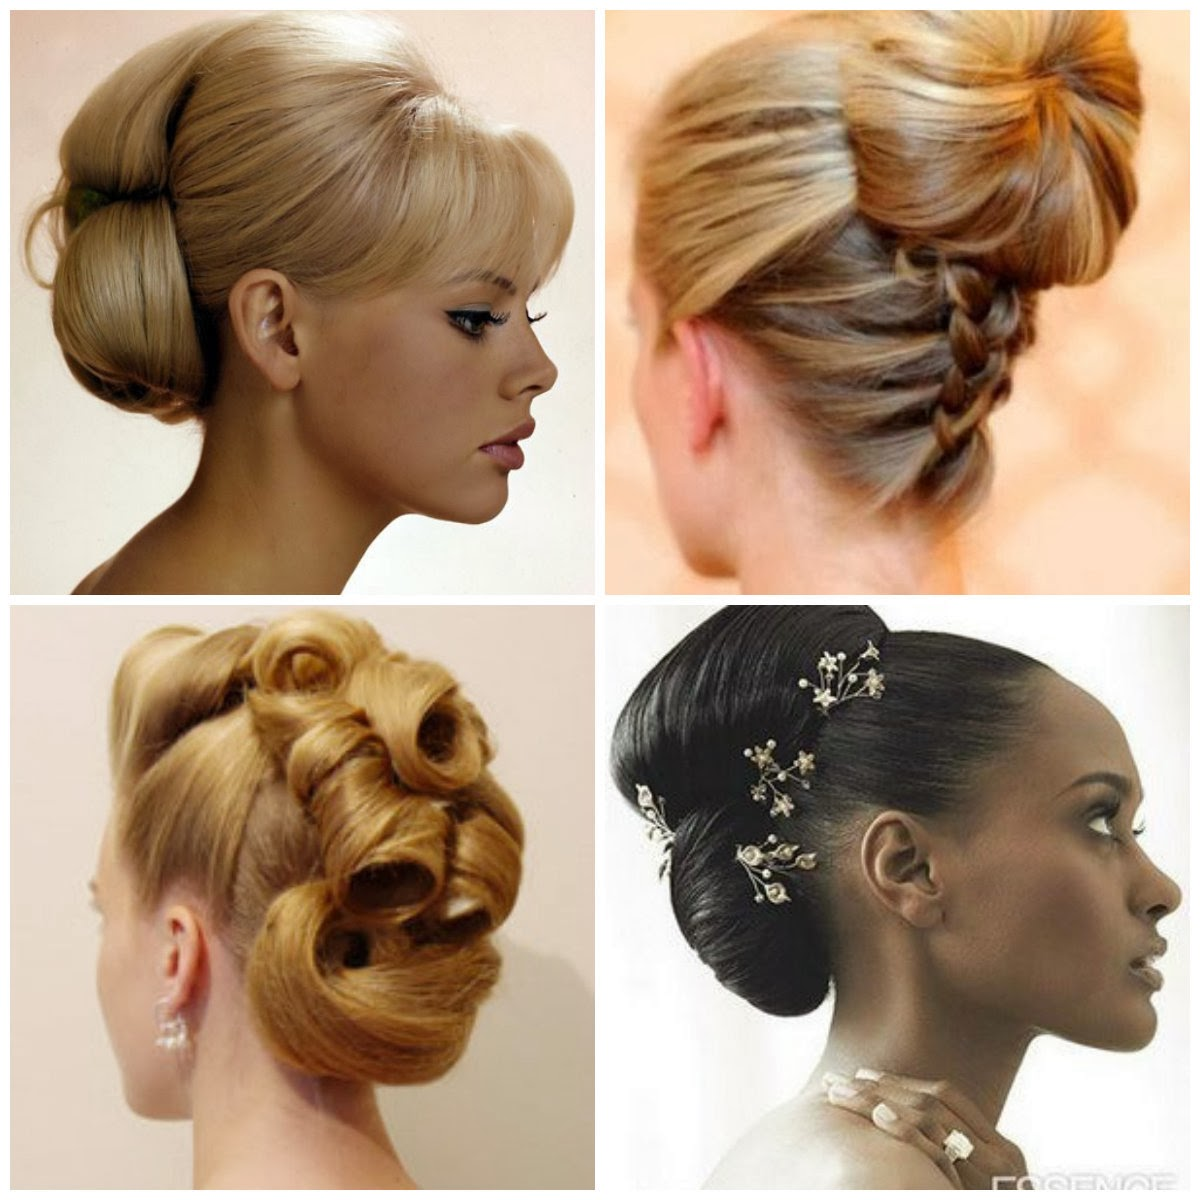 60s updo hairstyles hairstyles